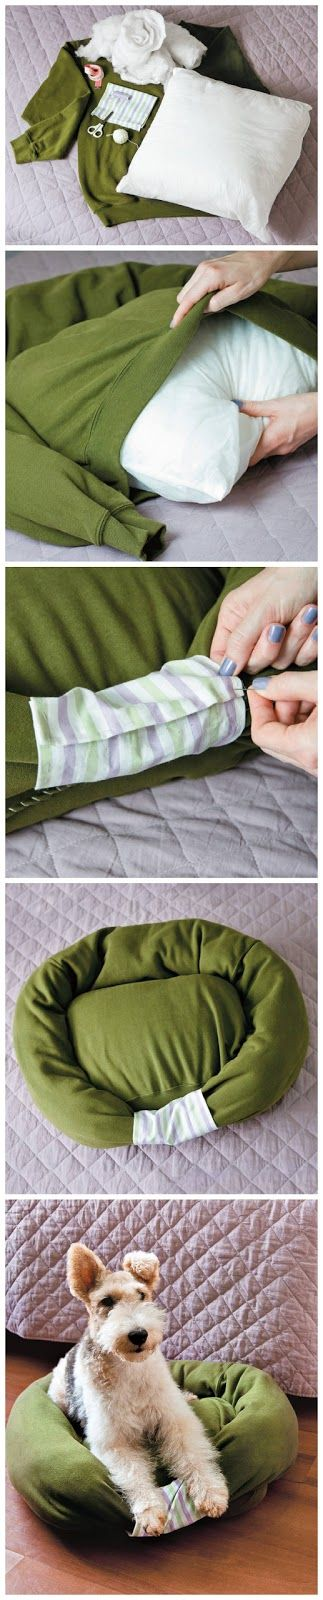 Cute dogbed made out of sweatshirt